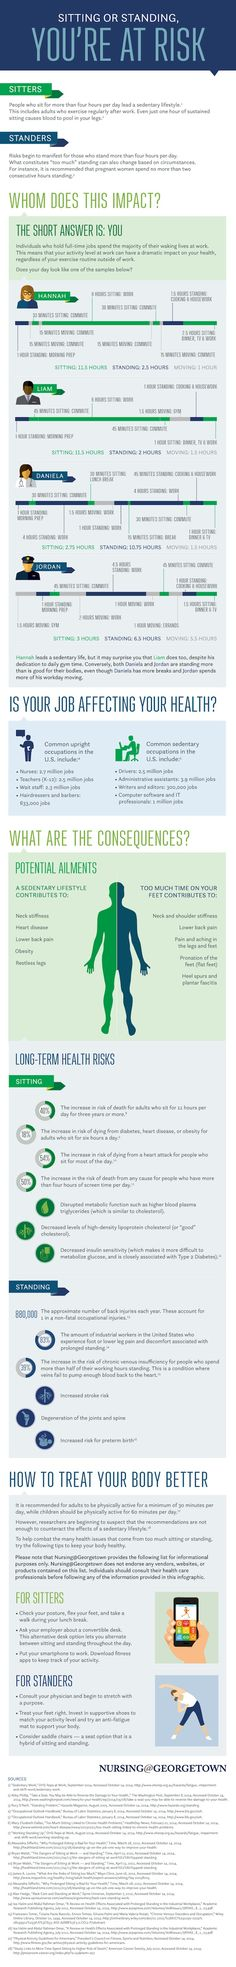 If Your Work Requires Prolonged Sitting or Standing, You're at Risk